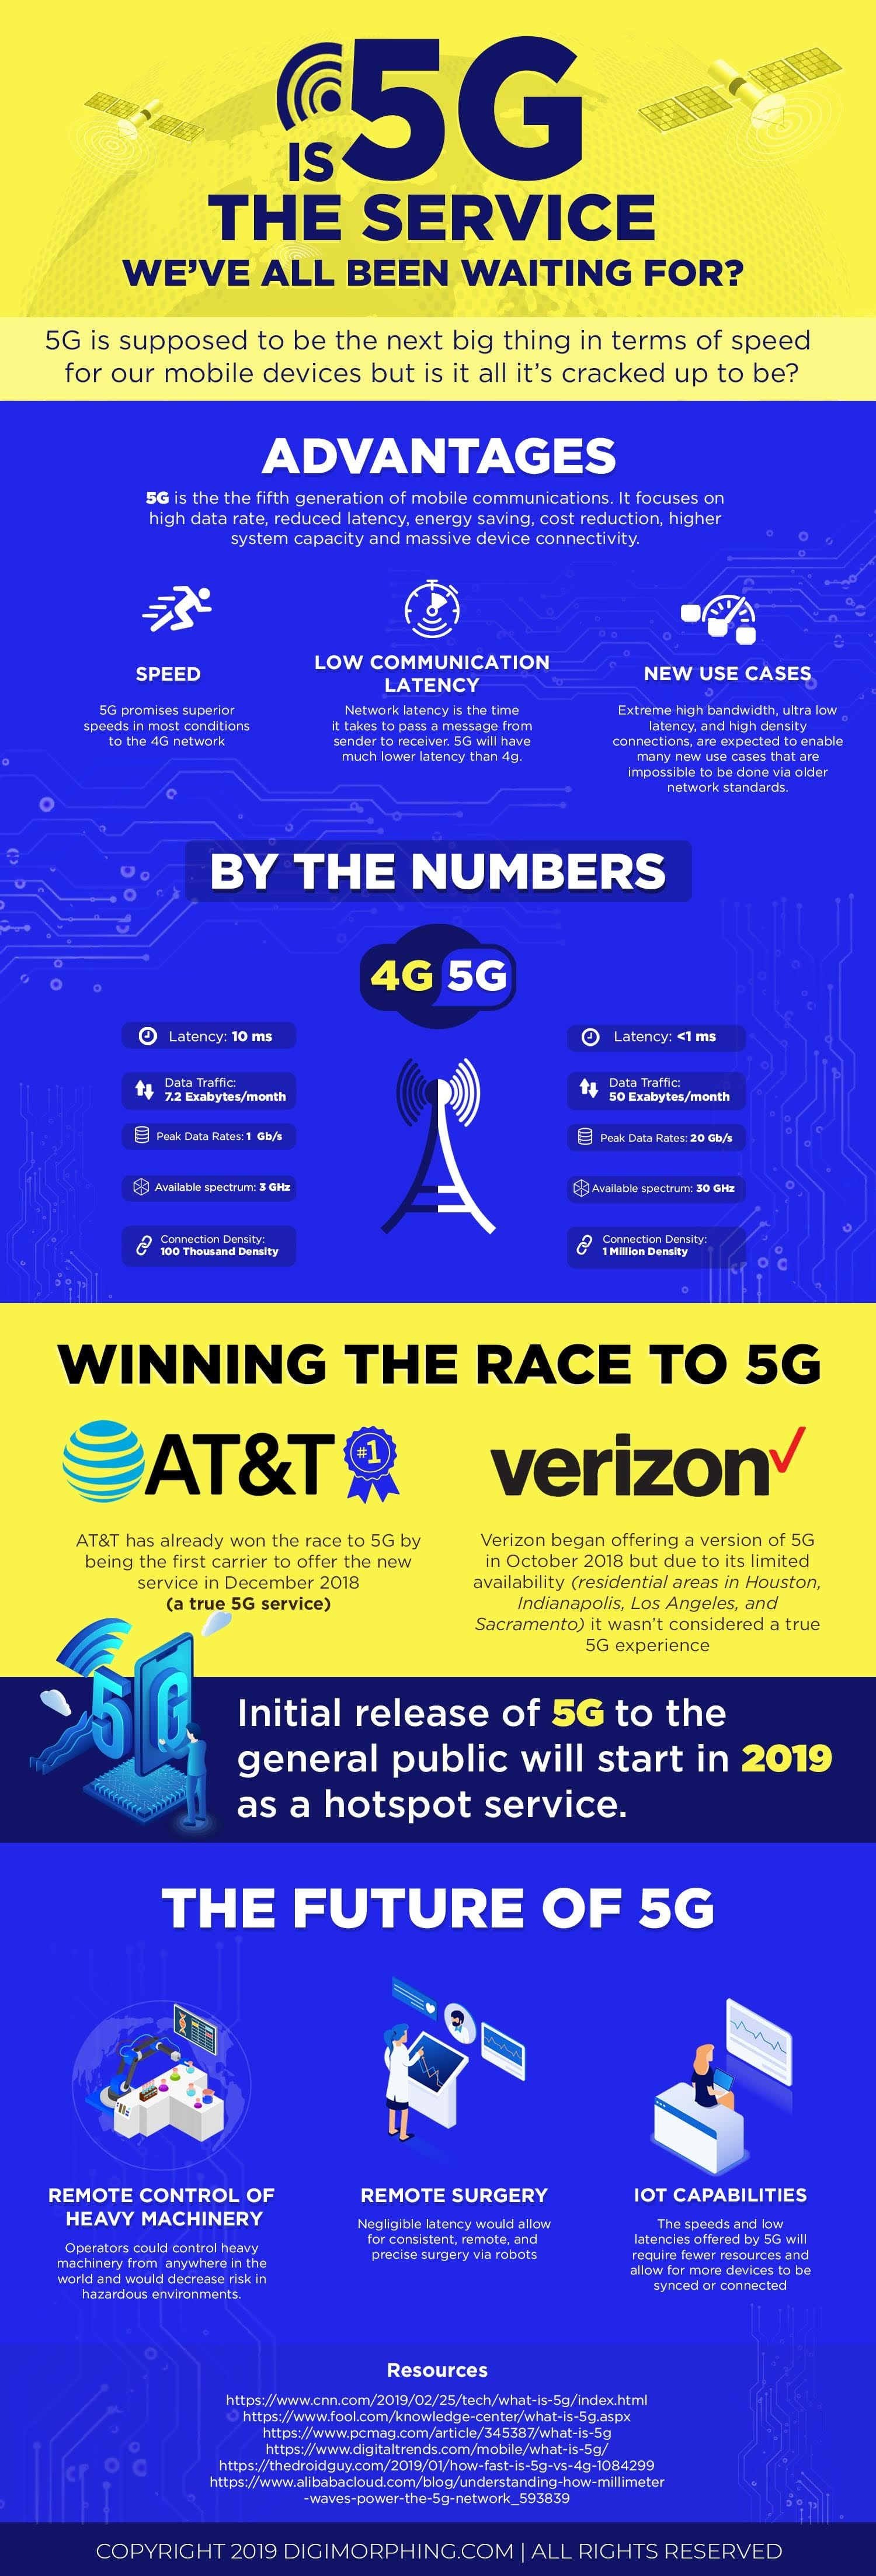 Is 5G the Service We All Waited for?